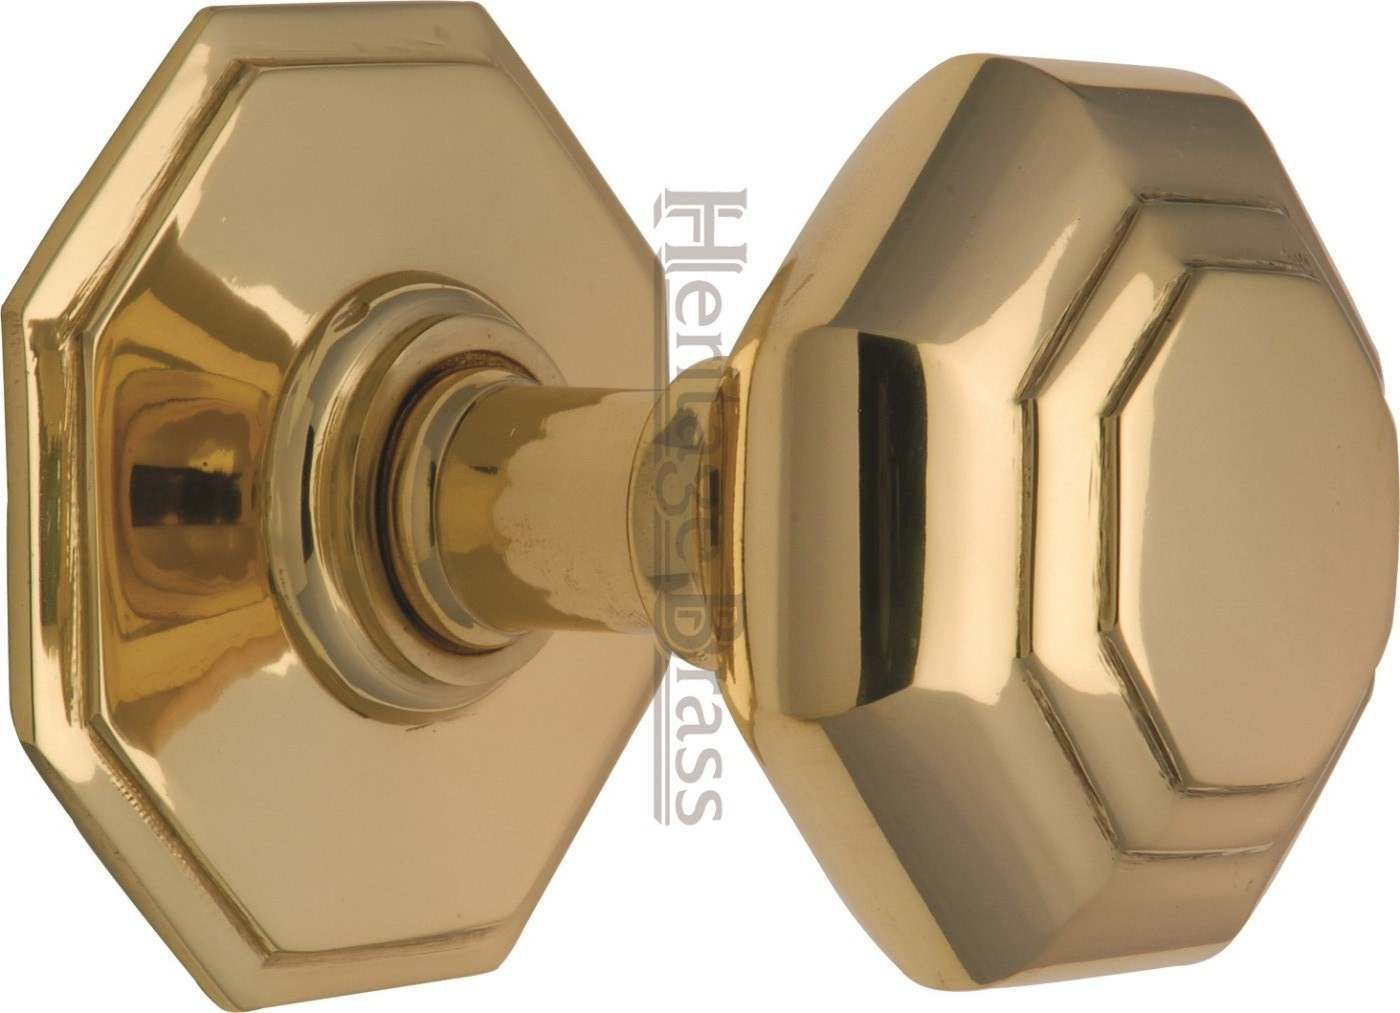 octagonal door knob photo - 20